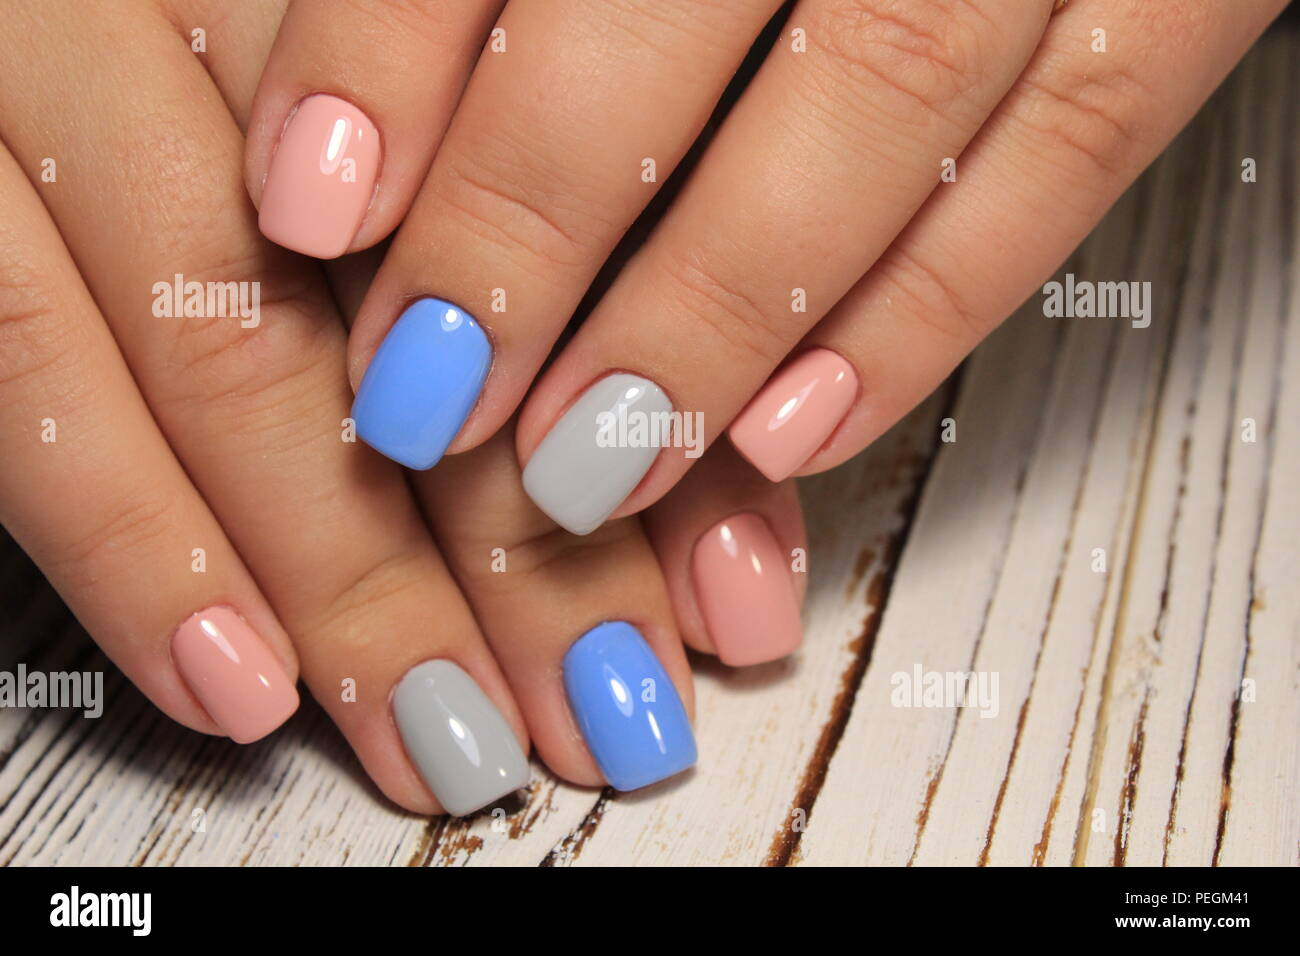 Hands With Beautiful Manicure Natural Nails With Gel Polish Stock Photo Alamy